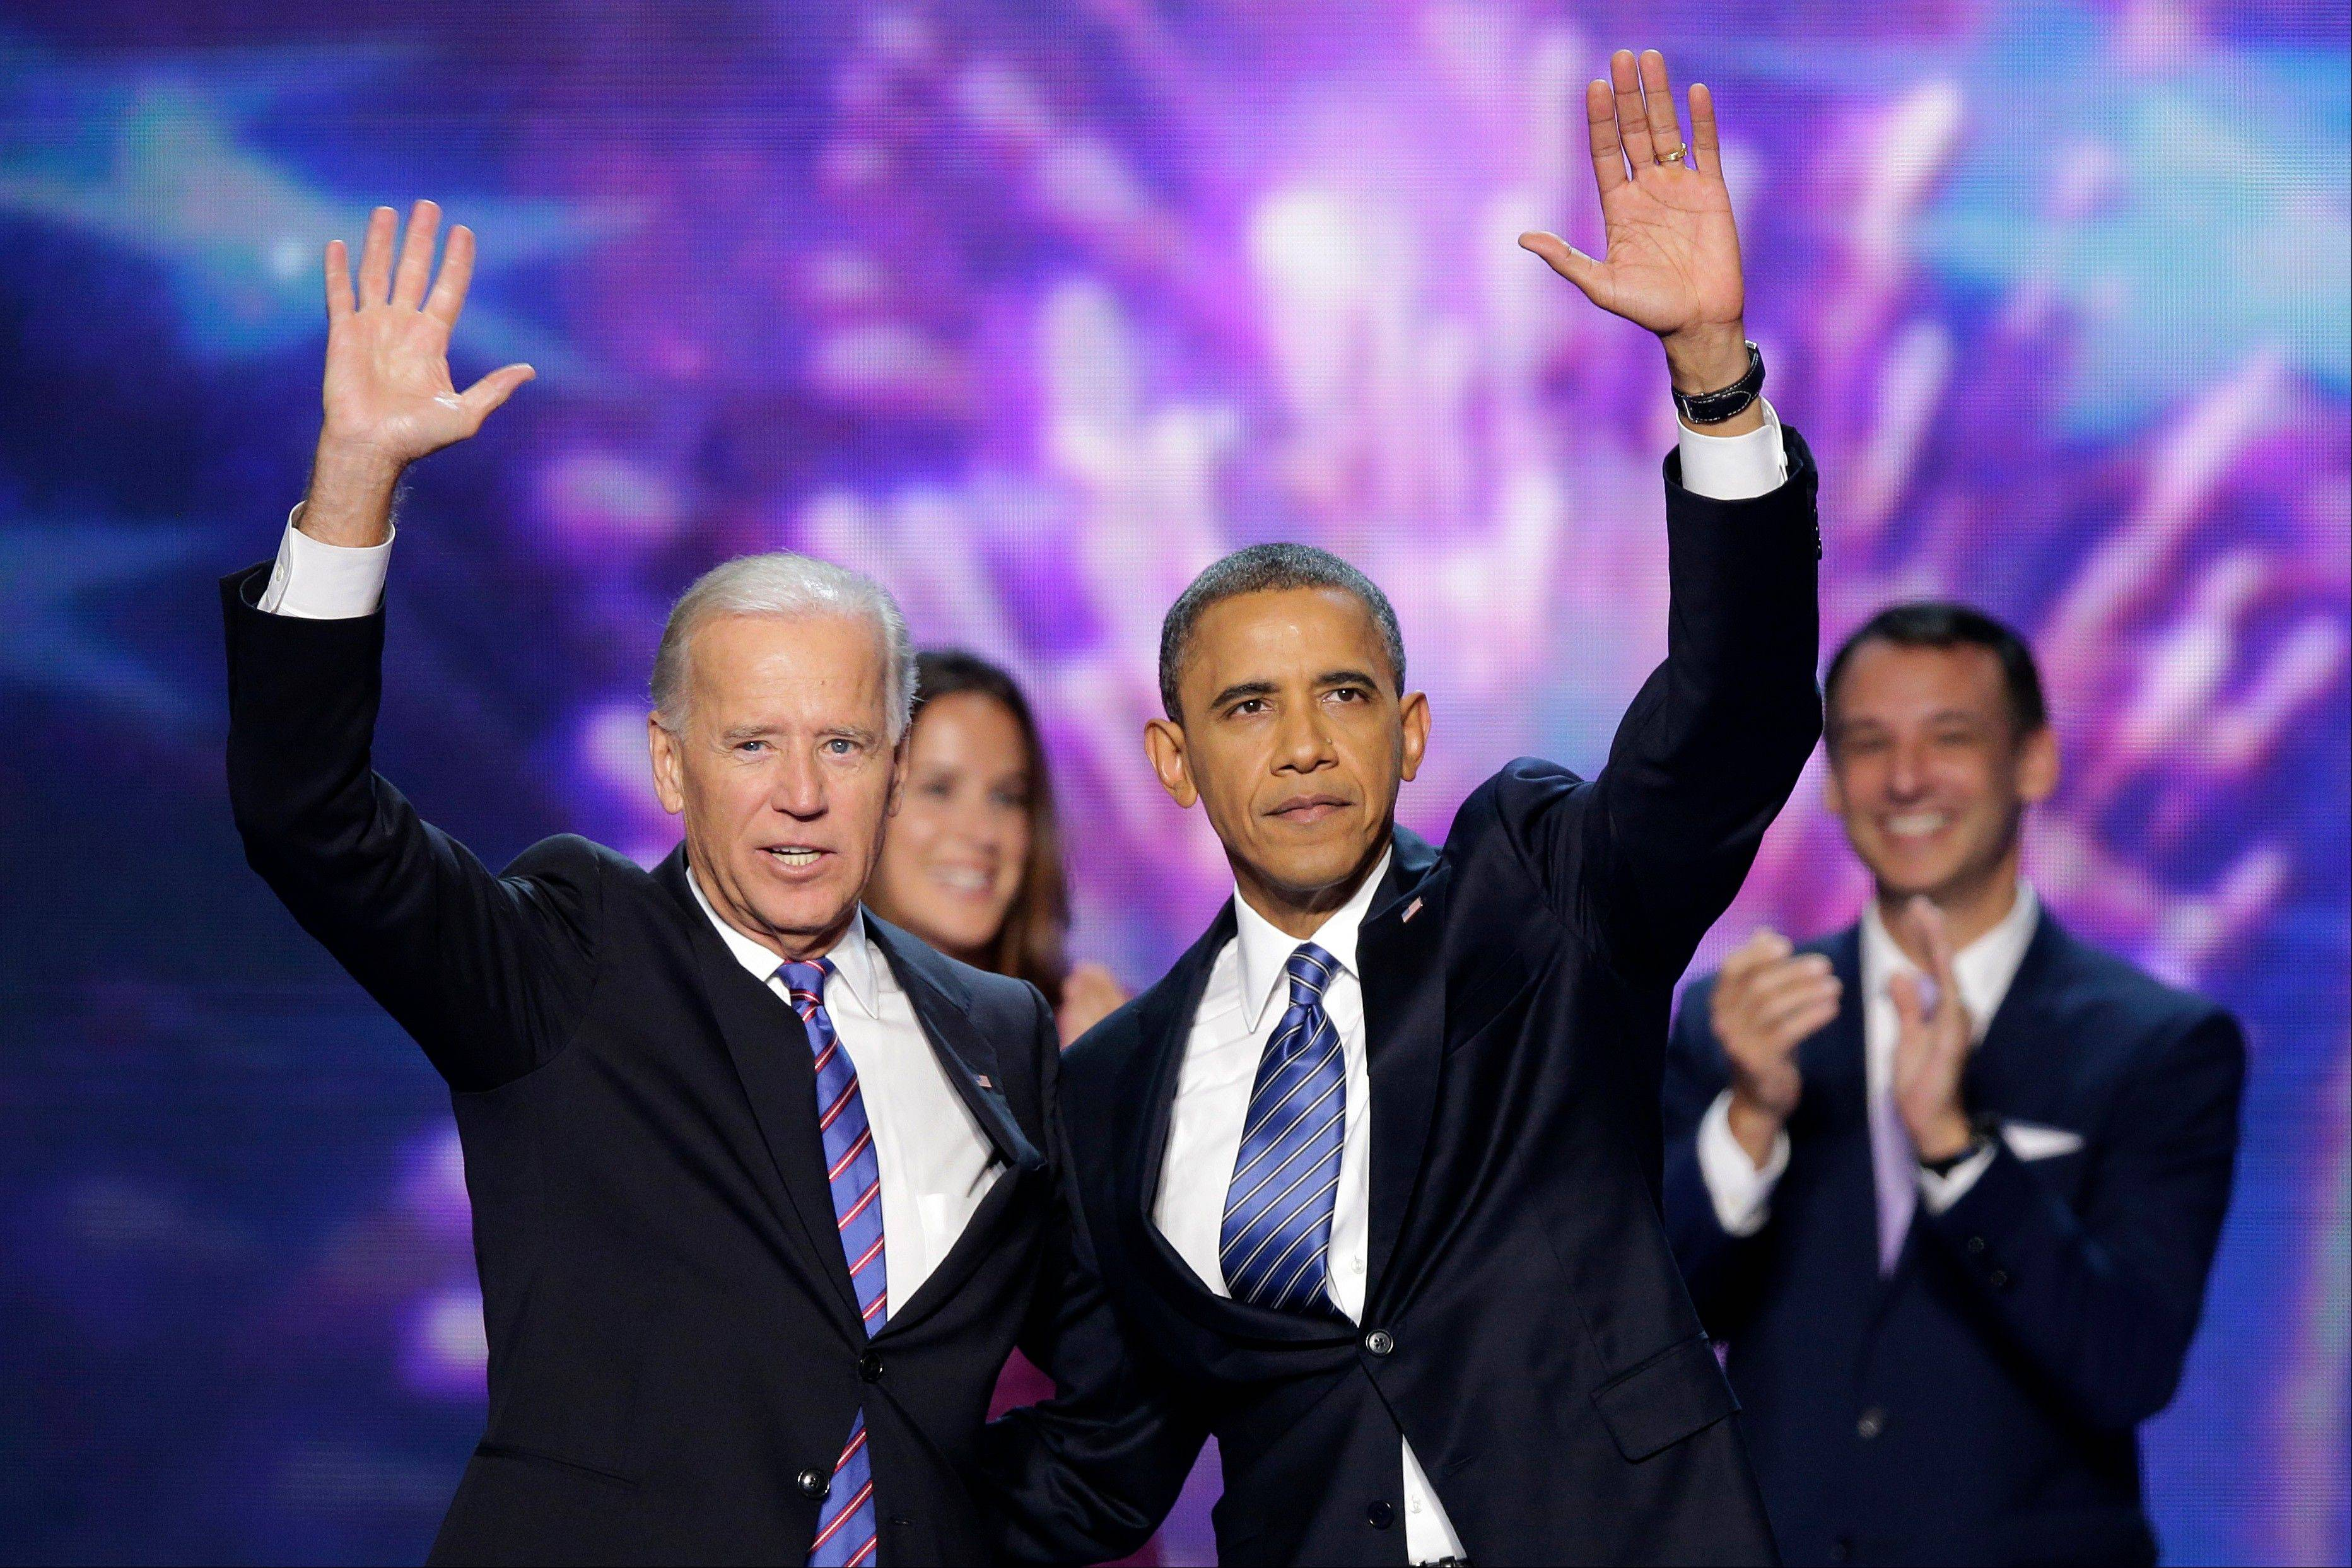 Vice President Joe Biden and President Barack Obama wave to the delegates at the conclusion of Presdident Obama�s speech at the Democratic National Convention in Charlotte, N.C., on Thursday.